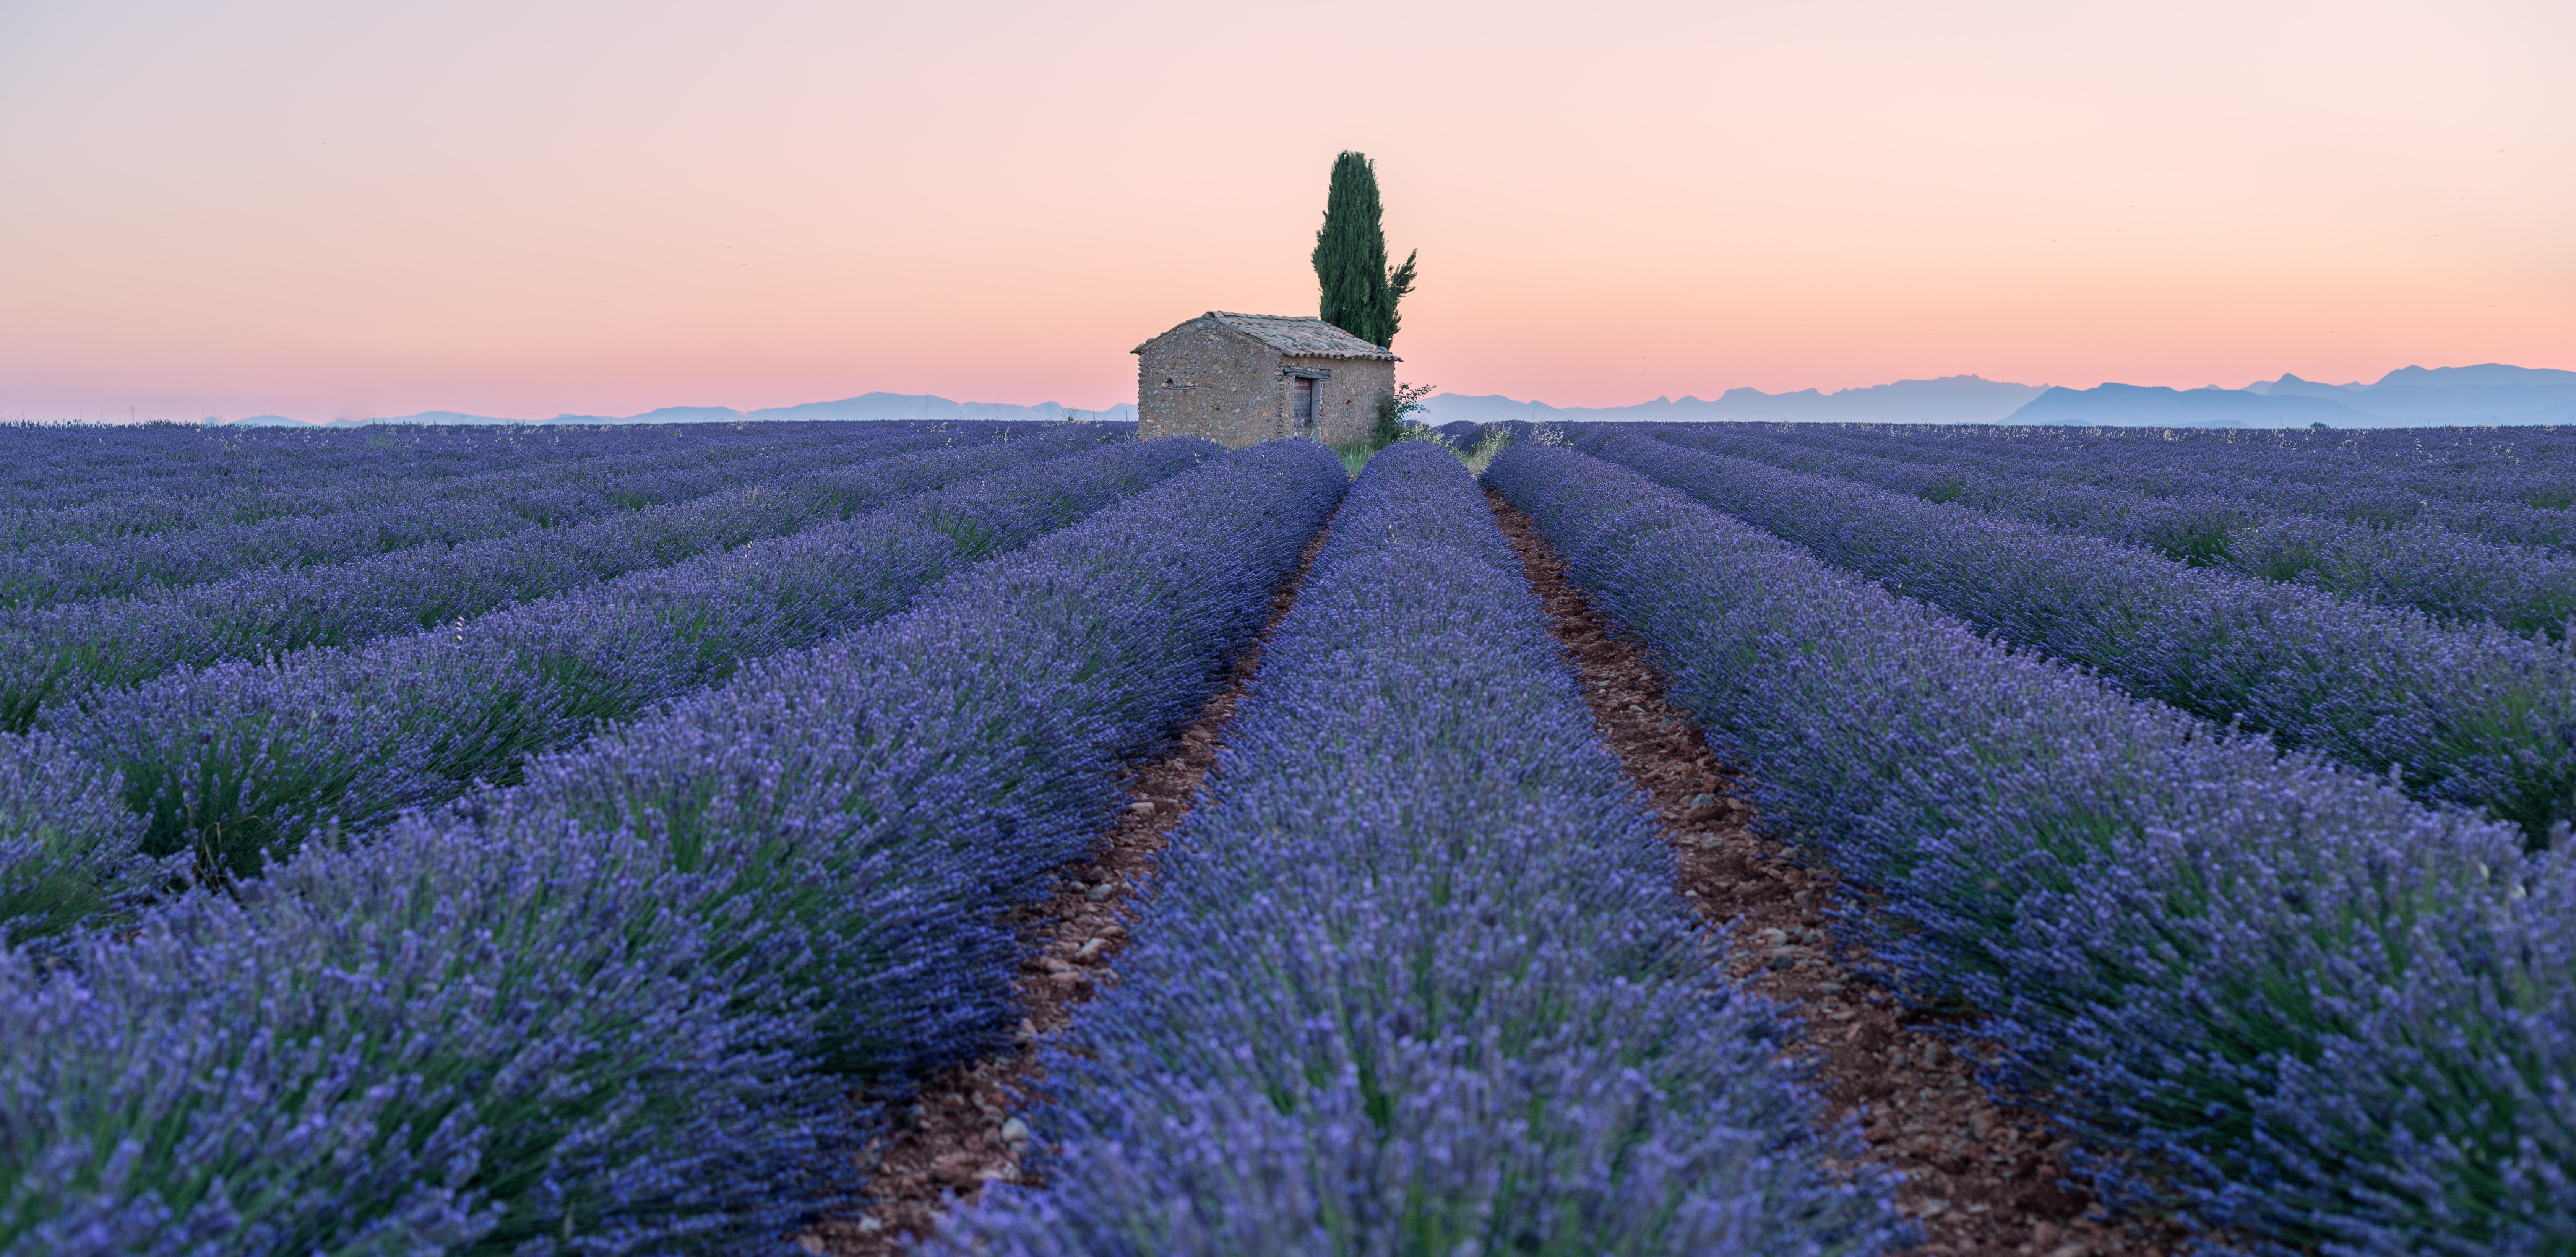 Meteo France Avignon 10 Best Provence Tours Vacation Packages 2019 2020 Tourradar